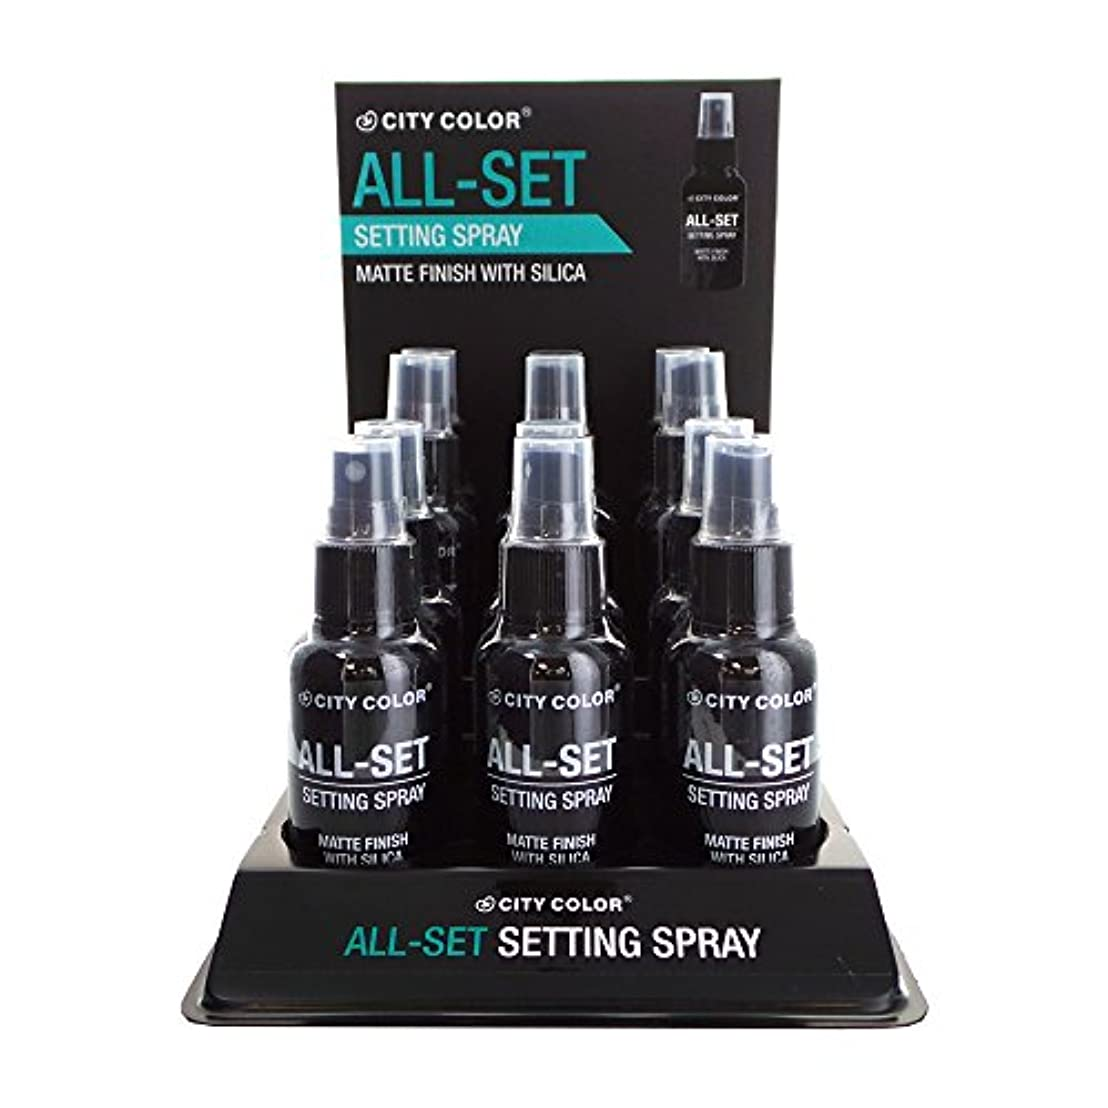 CITY COLOR All-Set Setting Spray Display Set, 12 Pieces (並行輸入品)